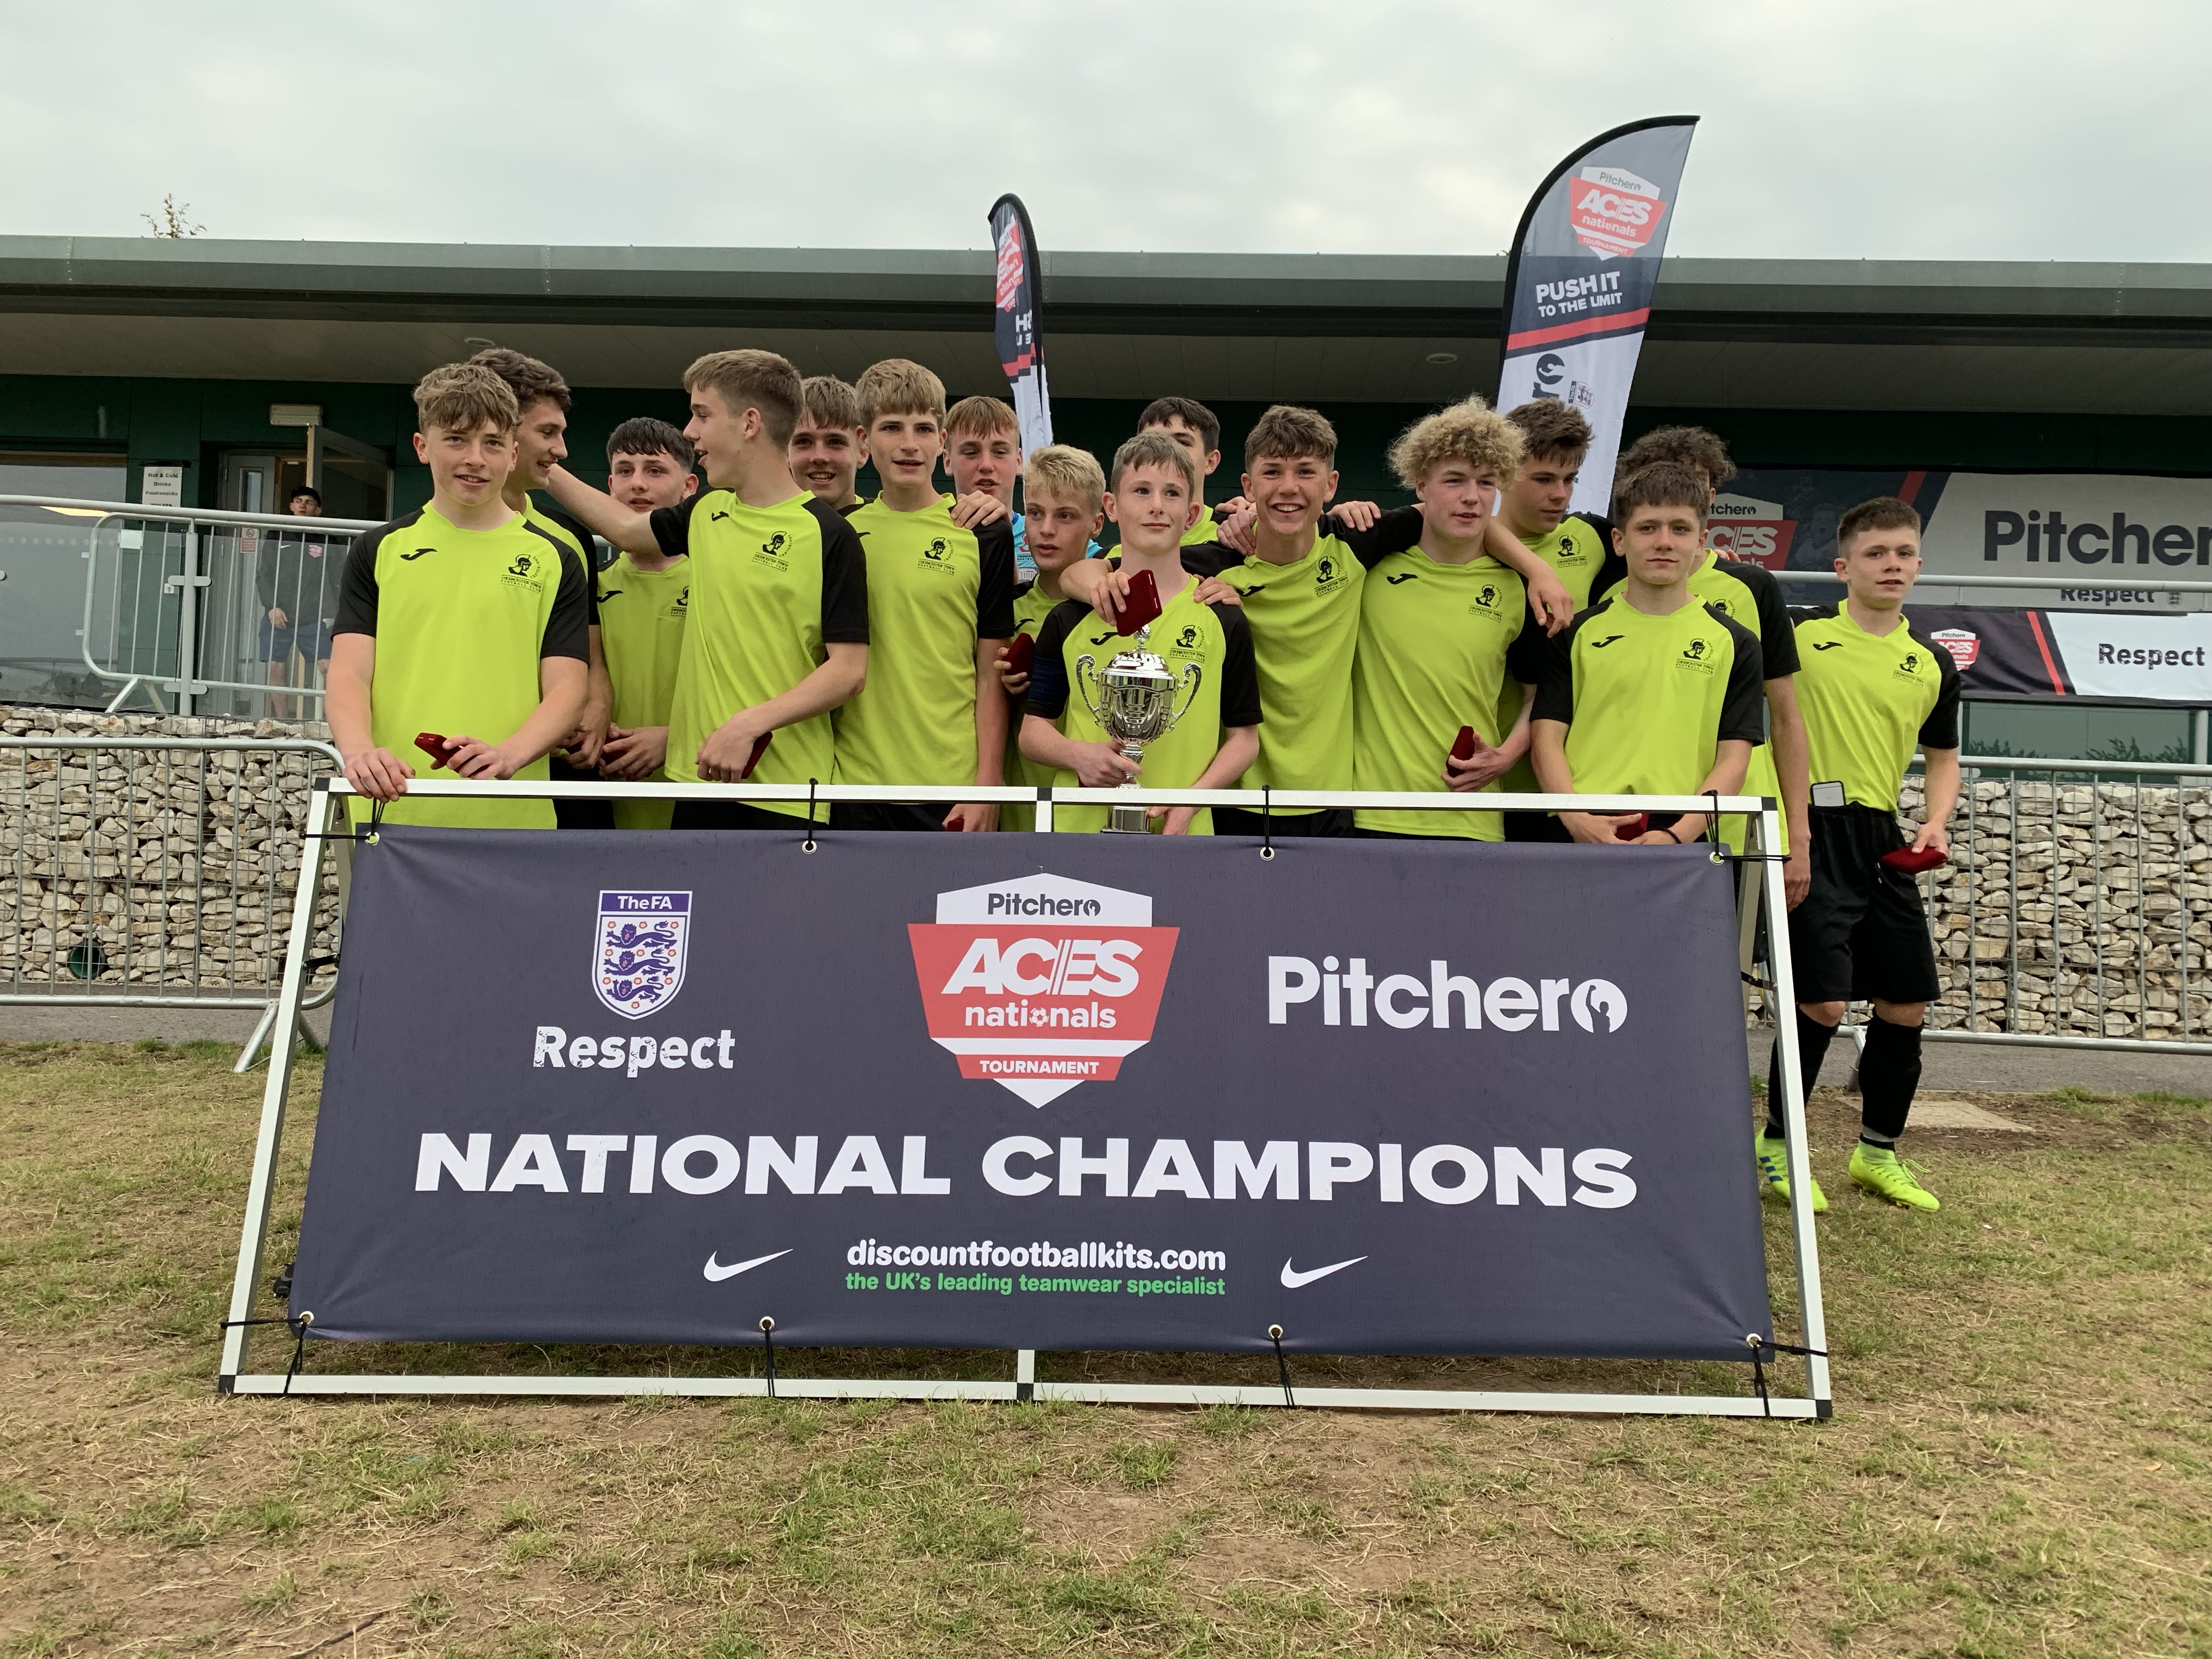 2019's U16 champions, Cirencester Town, representing Gloucester